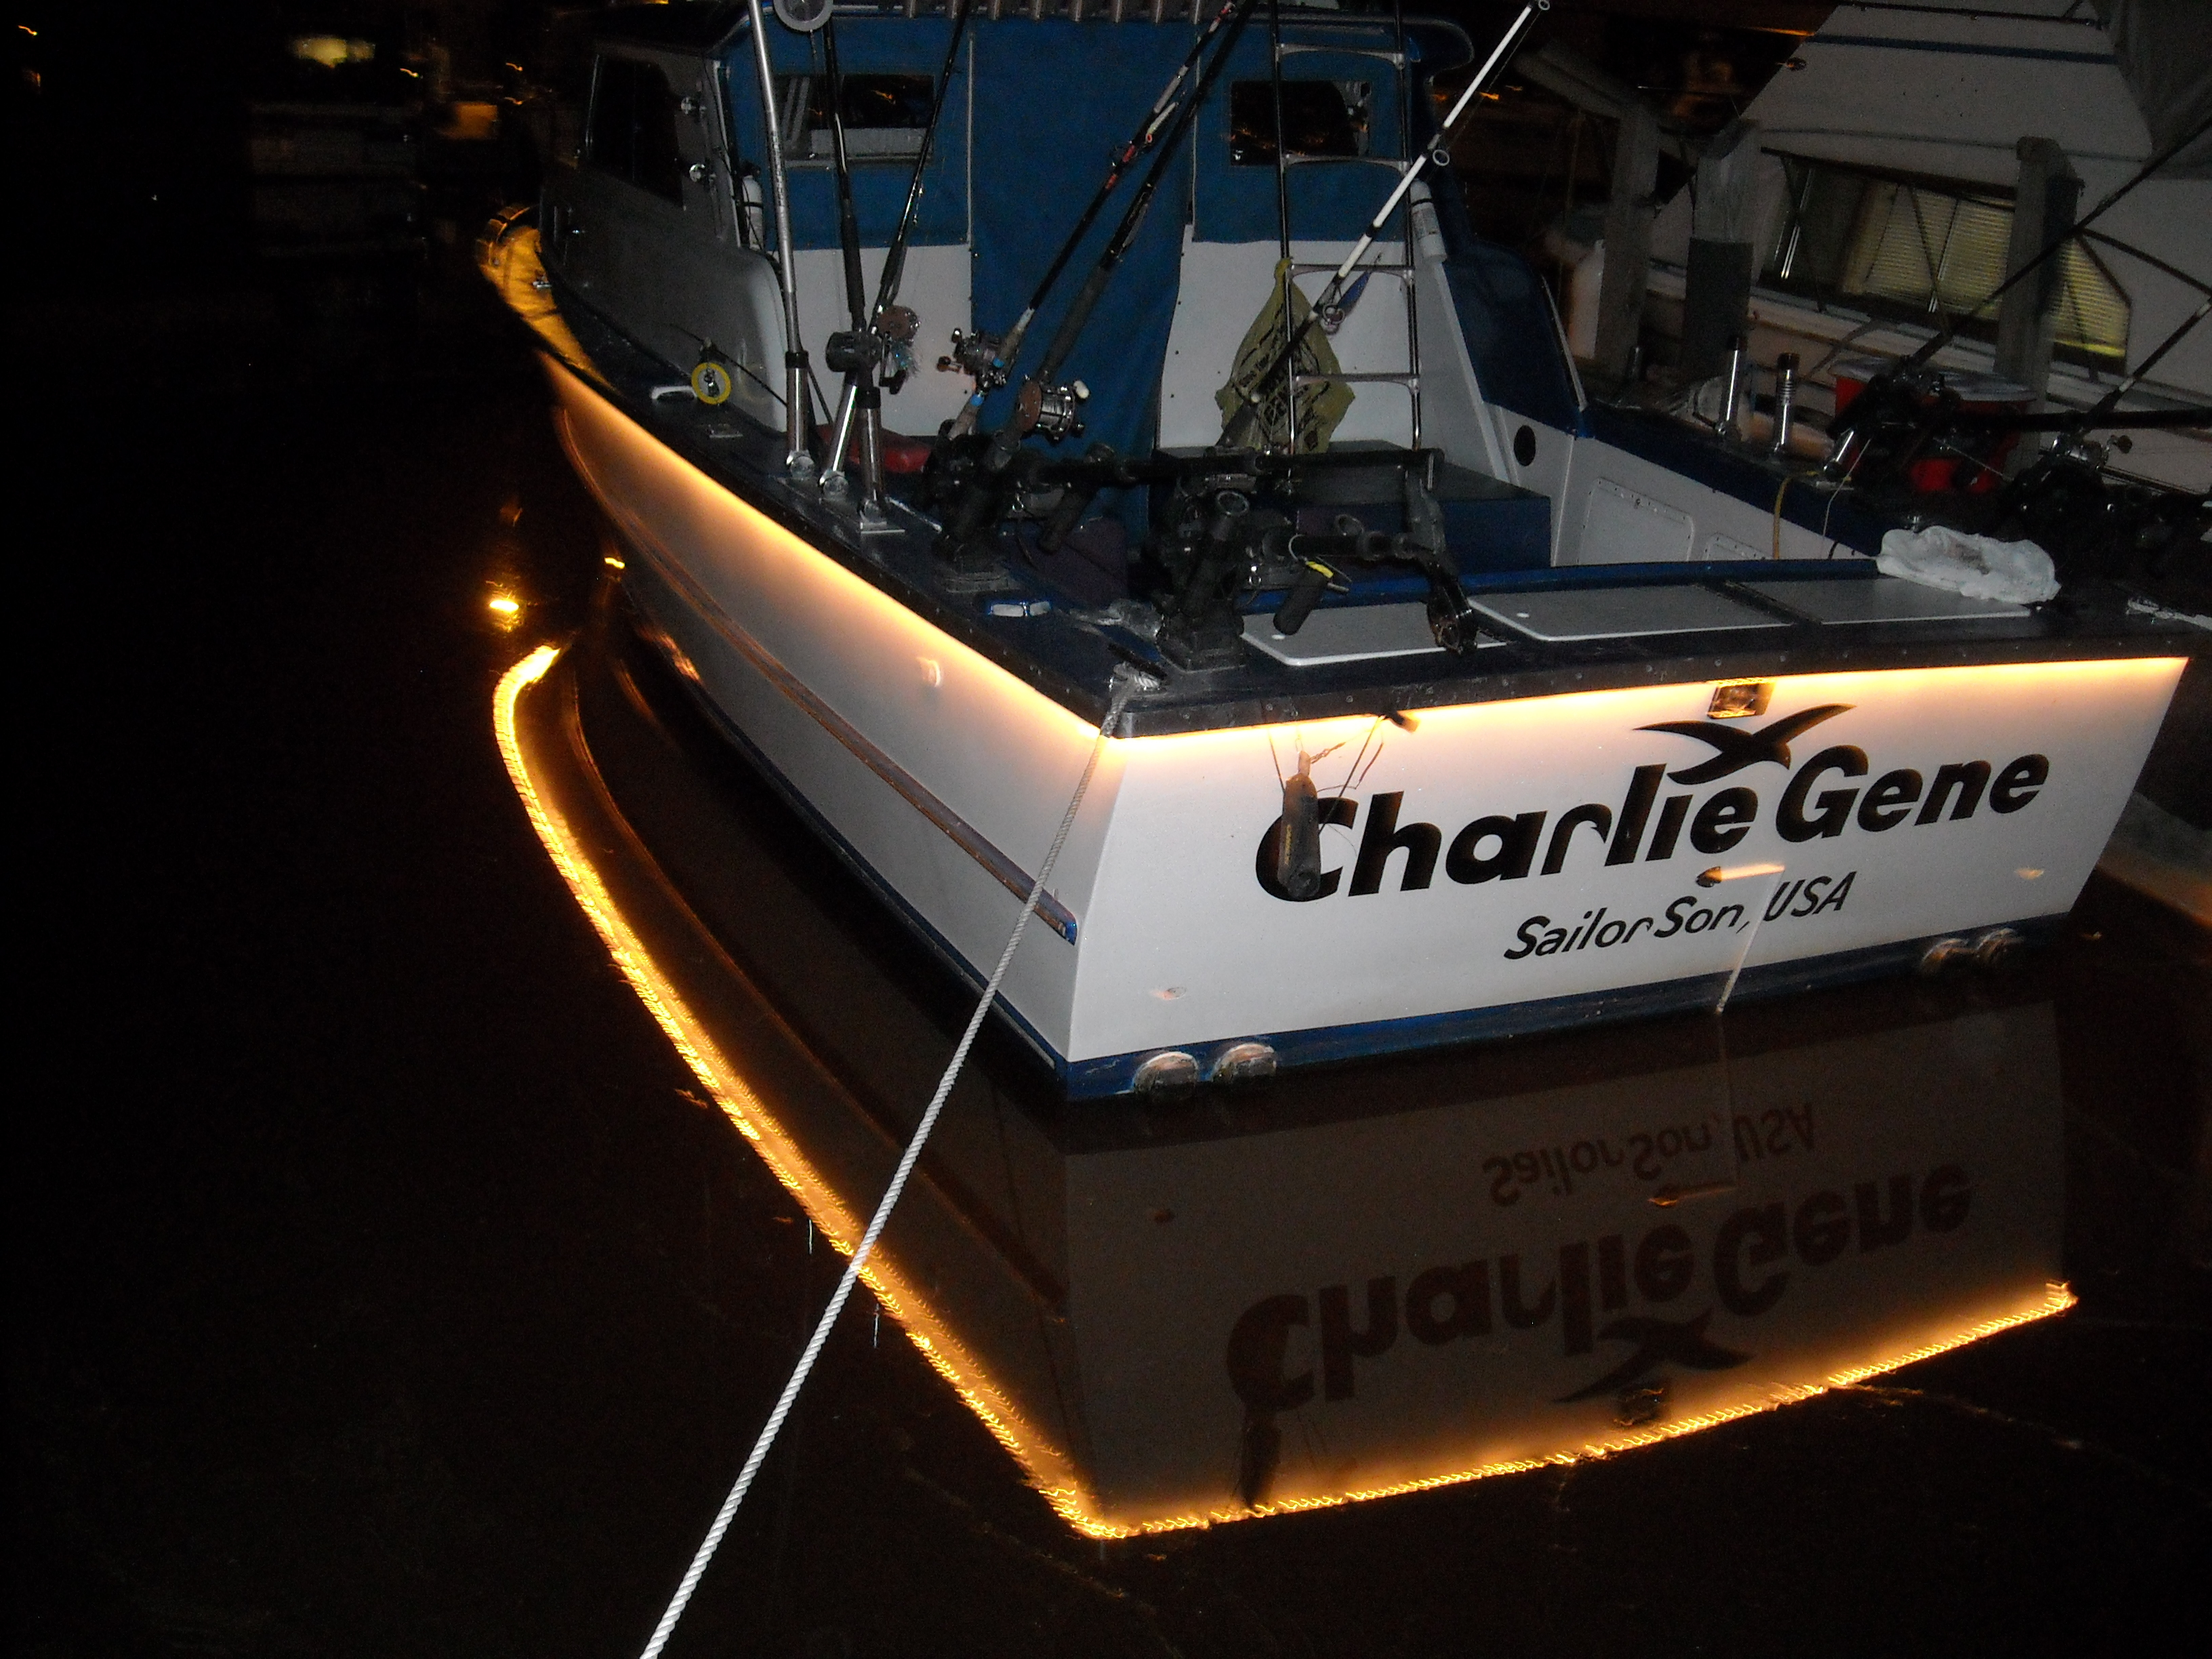 Here is the back of the Charlie Gene at the dock.